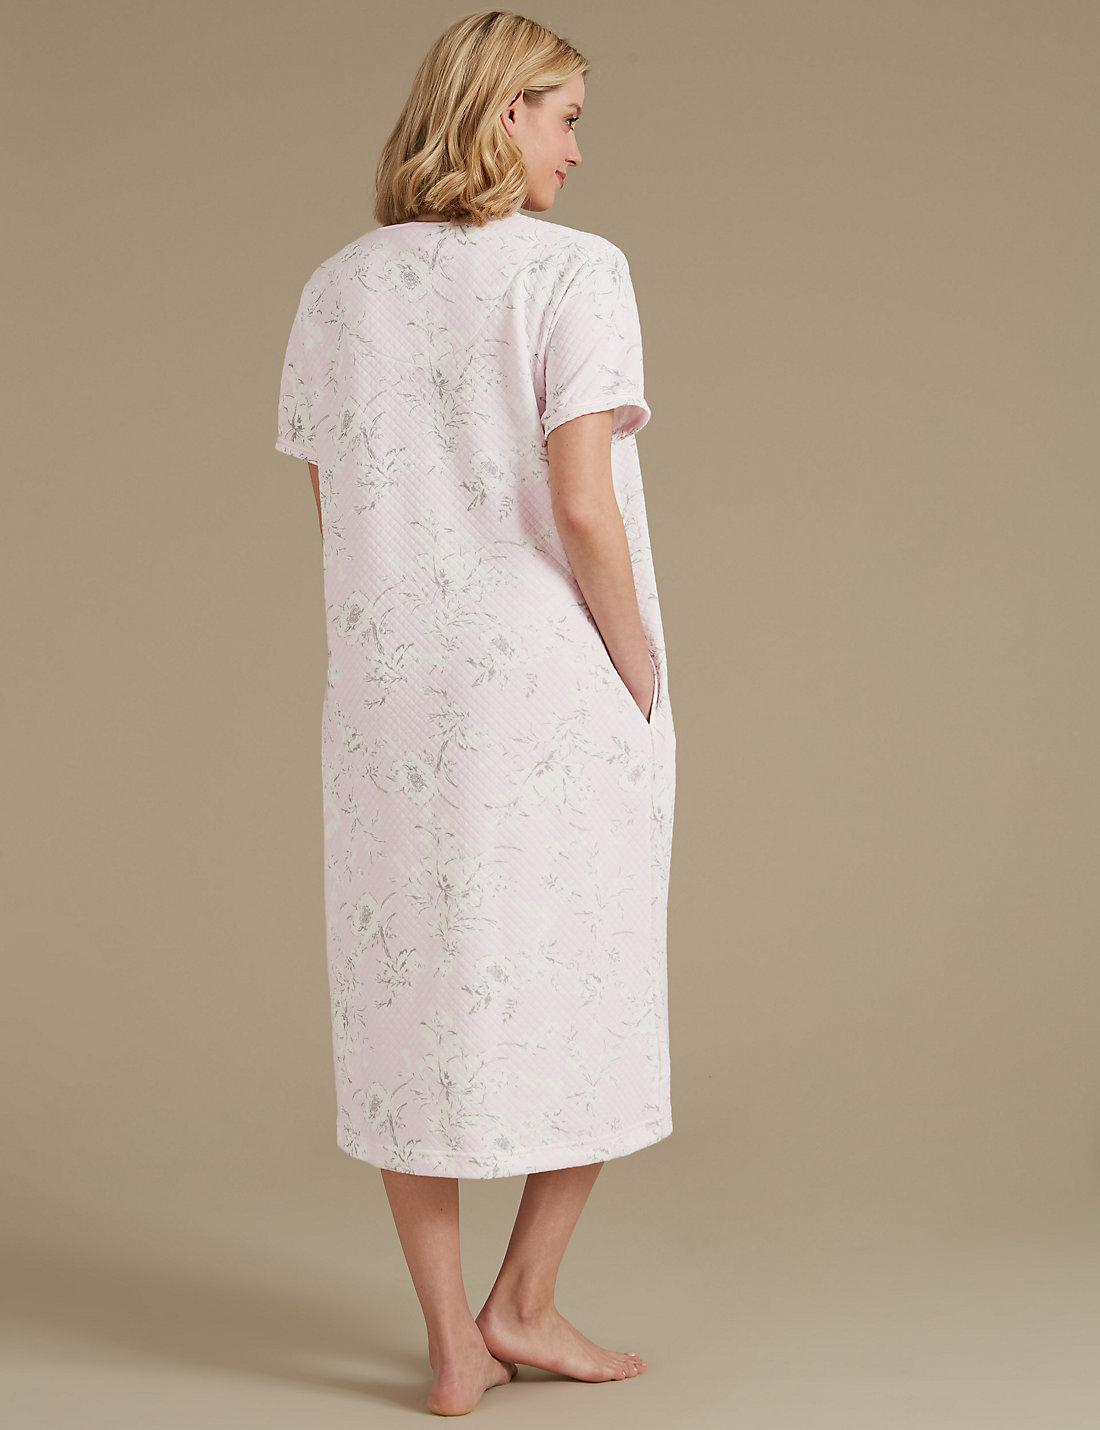 Lyst - Marks & Spencer Floral Print Short Sleeve Dressing Gown in Pink